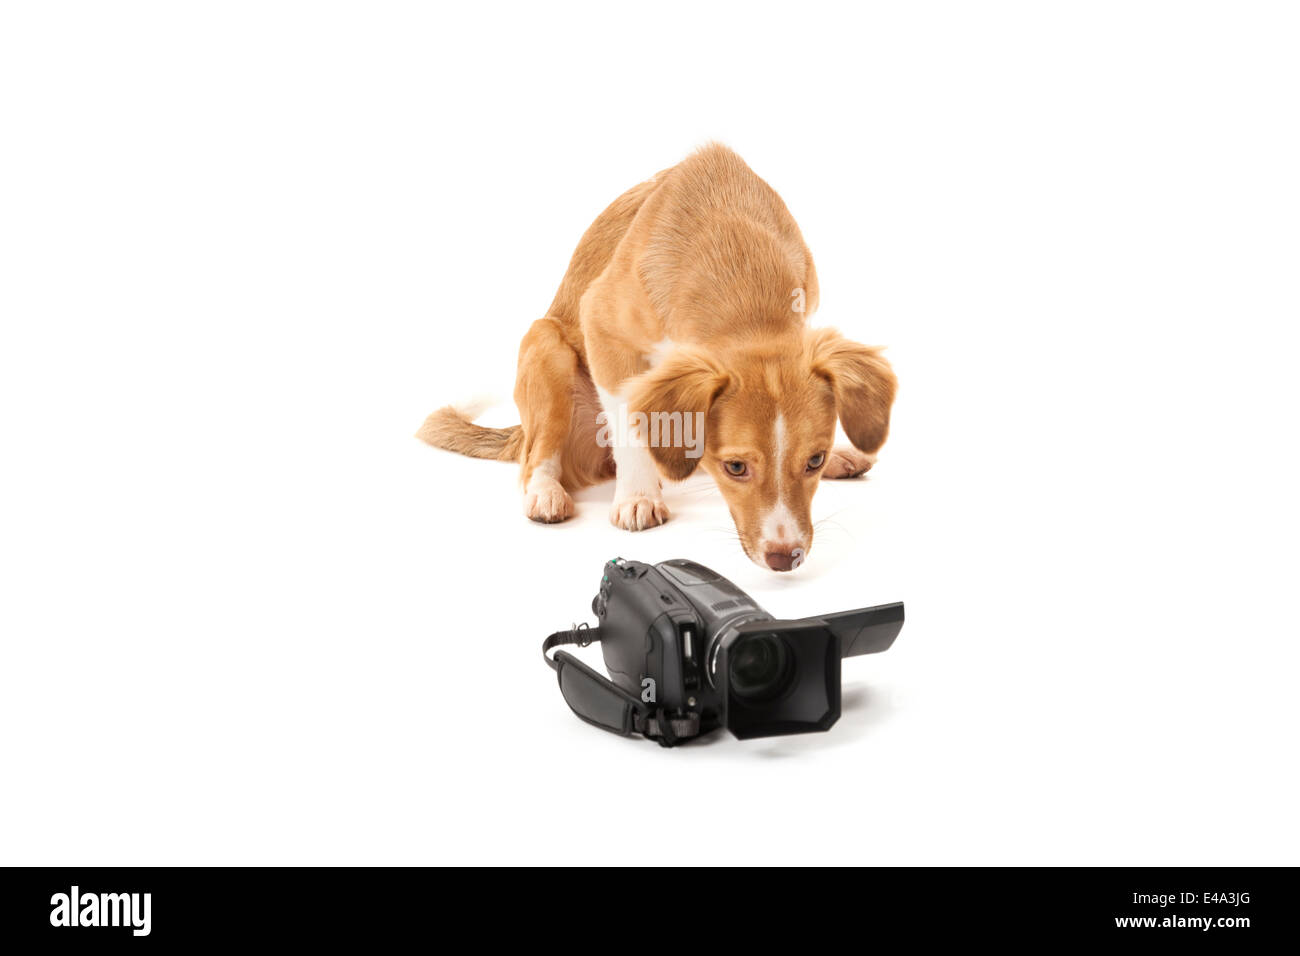 Portrait of dog looking at camcorder isolated over white background - Stock Image